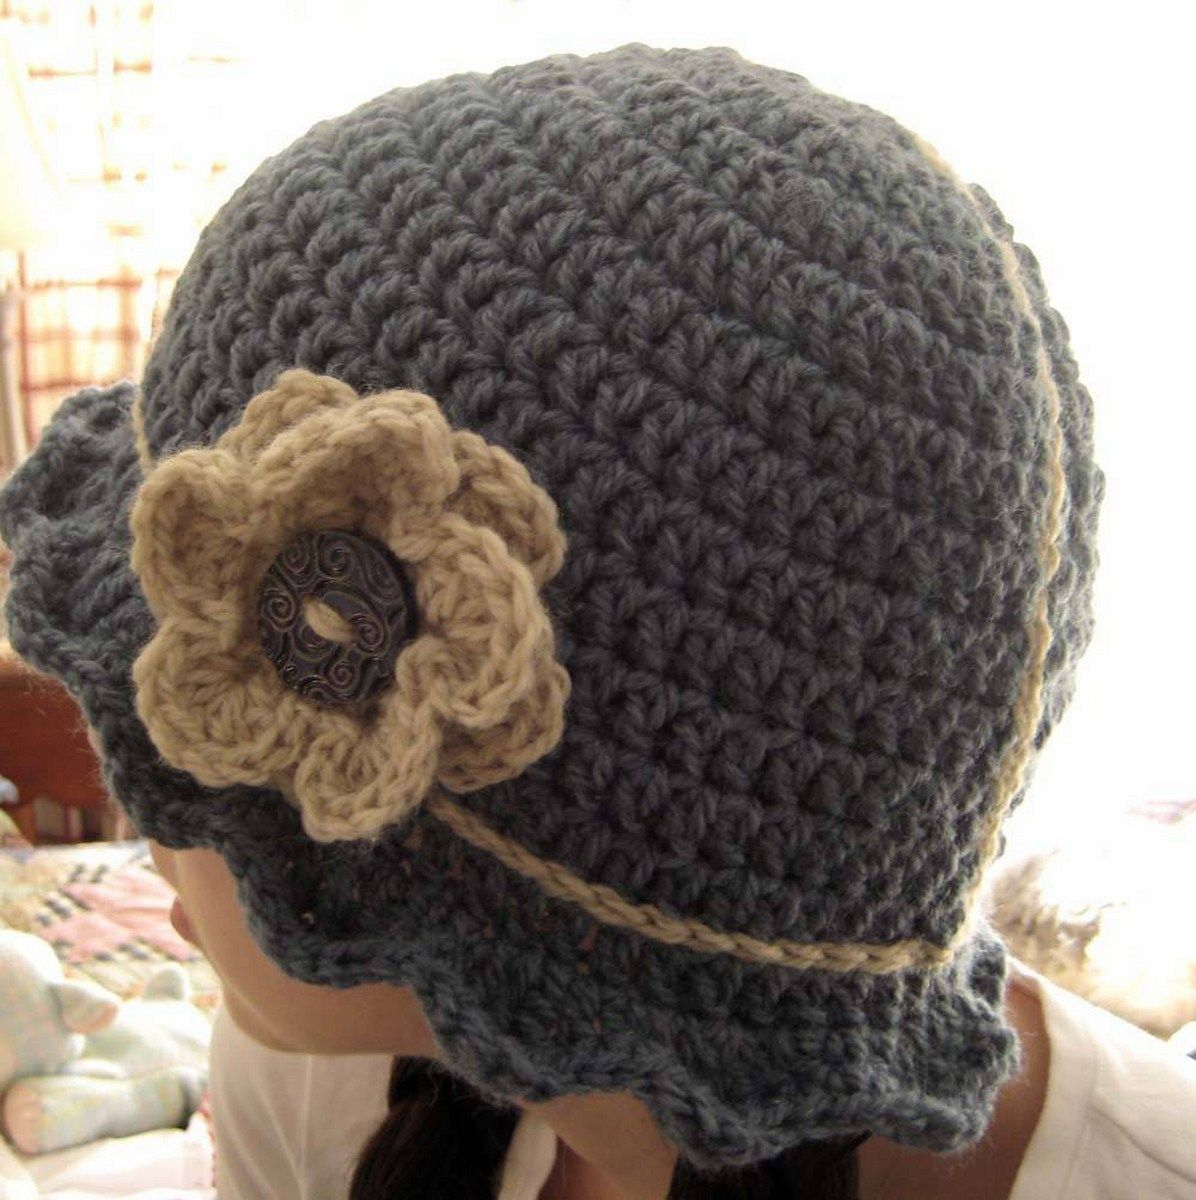 crochet flapper cloche hat pattern trend | gorros | Pinterest ...